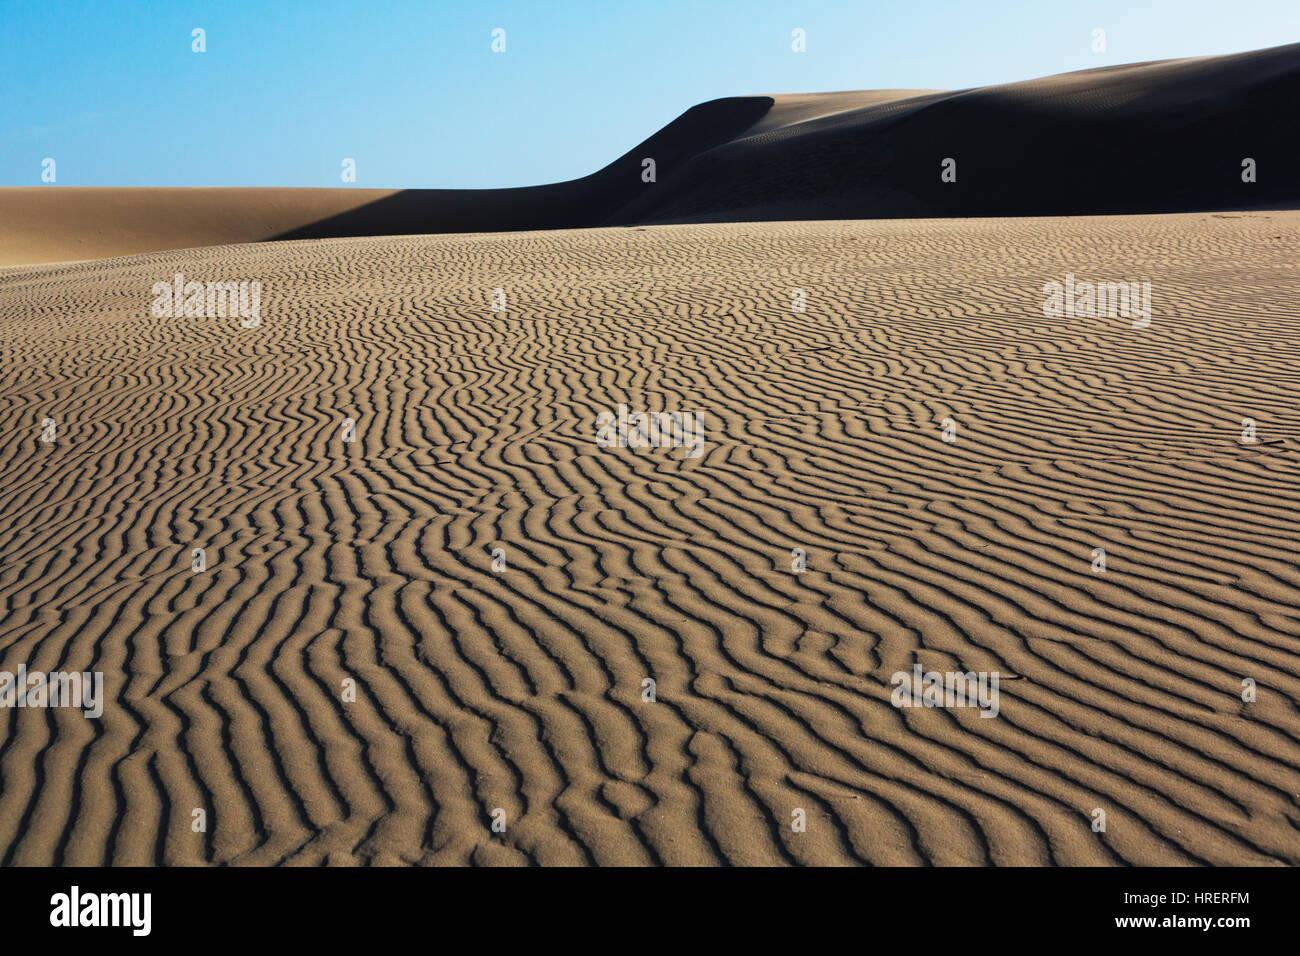 Reserva Natural Oceano Dunes, California Imagen De Stock